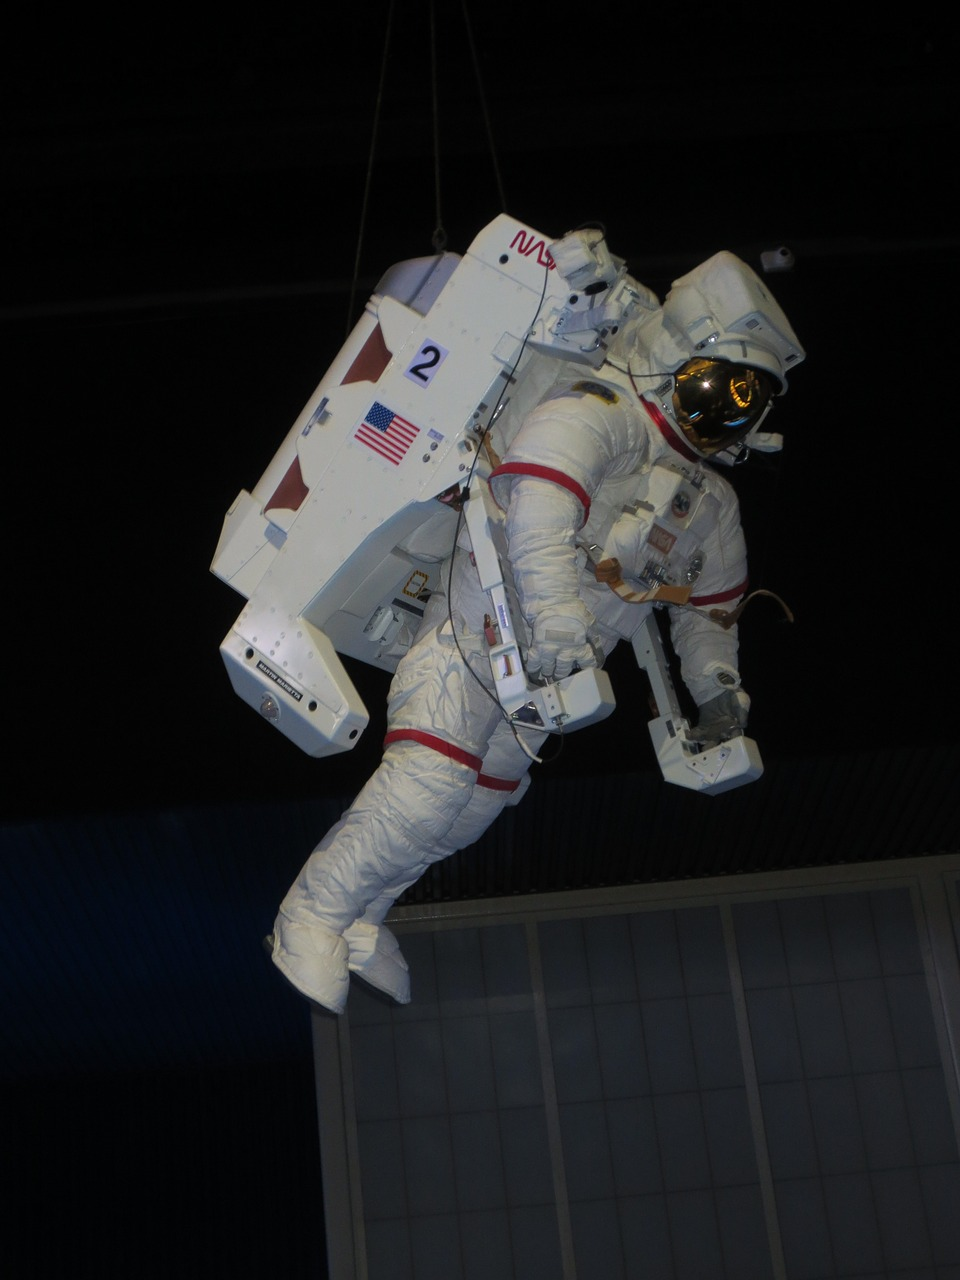 NASA's spacesuits are limited and disappearing quickly. Will there be enough to last until 2024, when the International Space Station is set to retire?